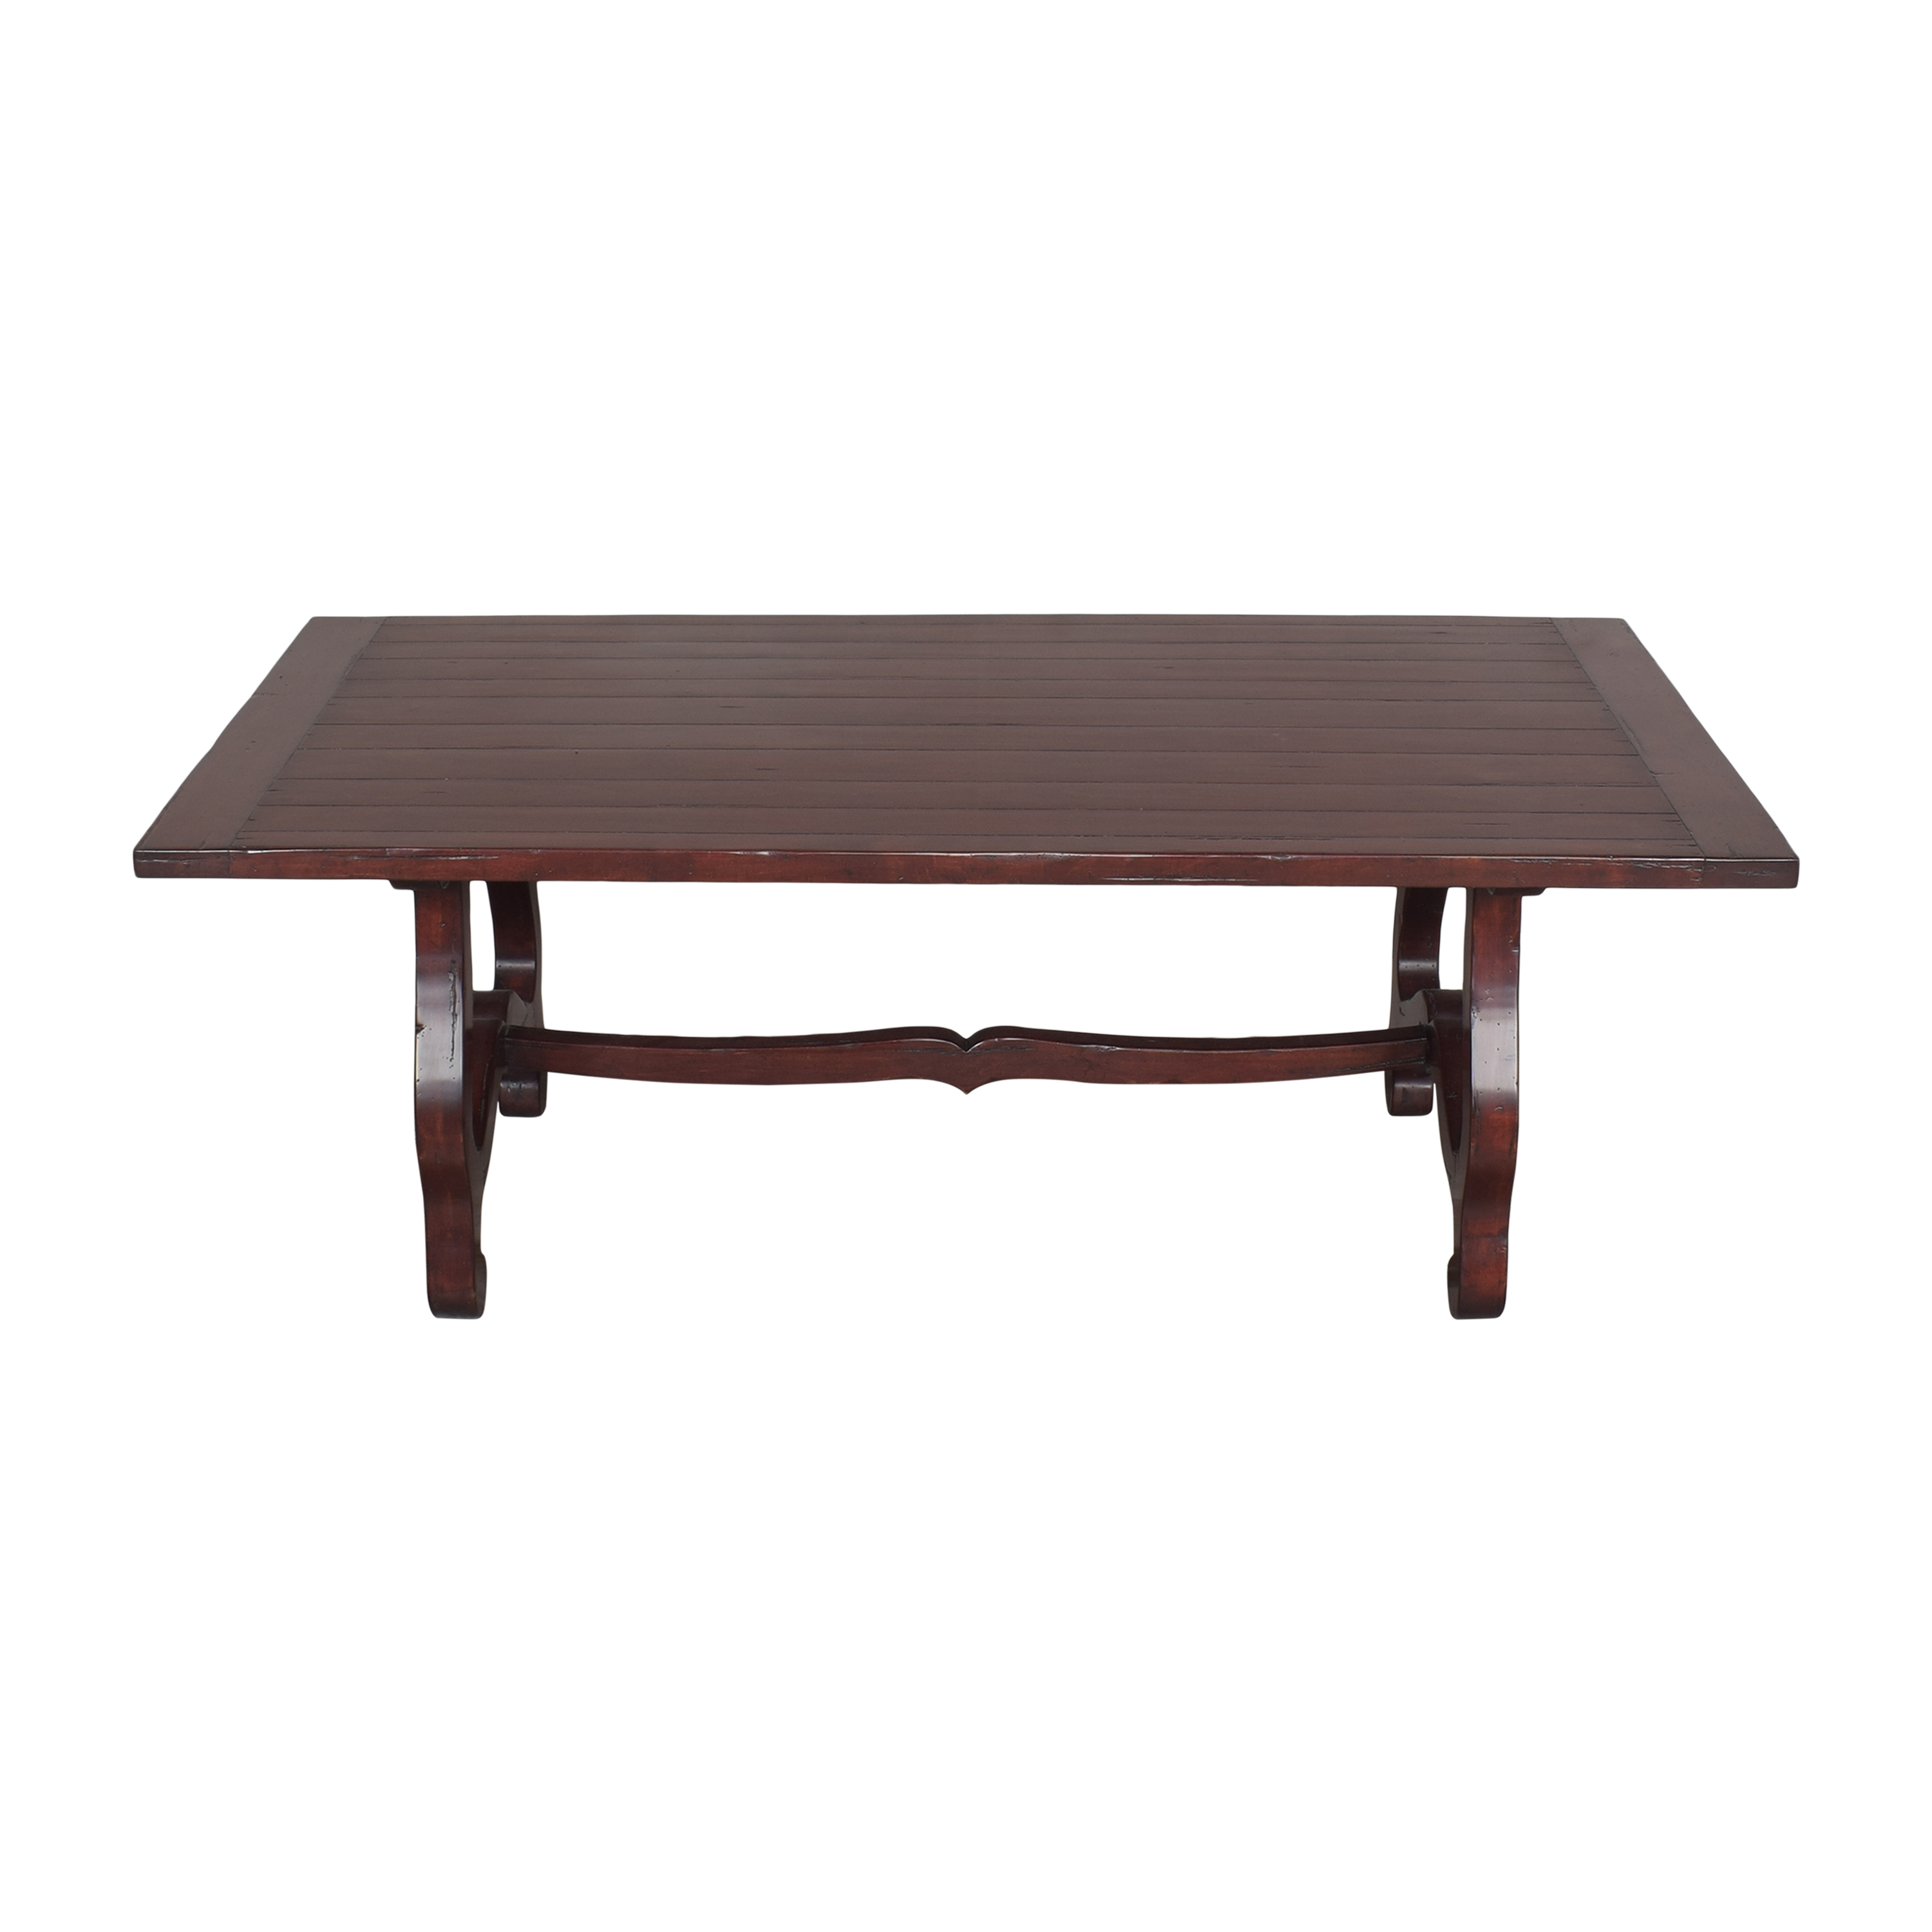 Guy Chaddock & Co. Guy Chaddock & Co Country English Trestle Dining Table on sale